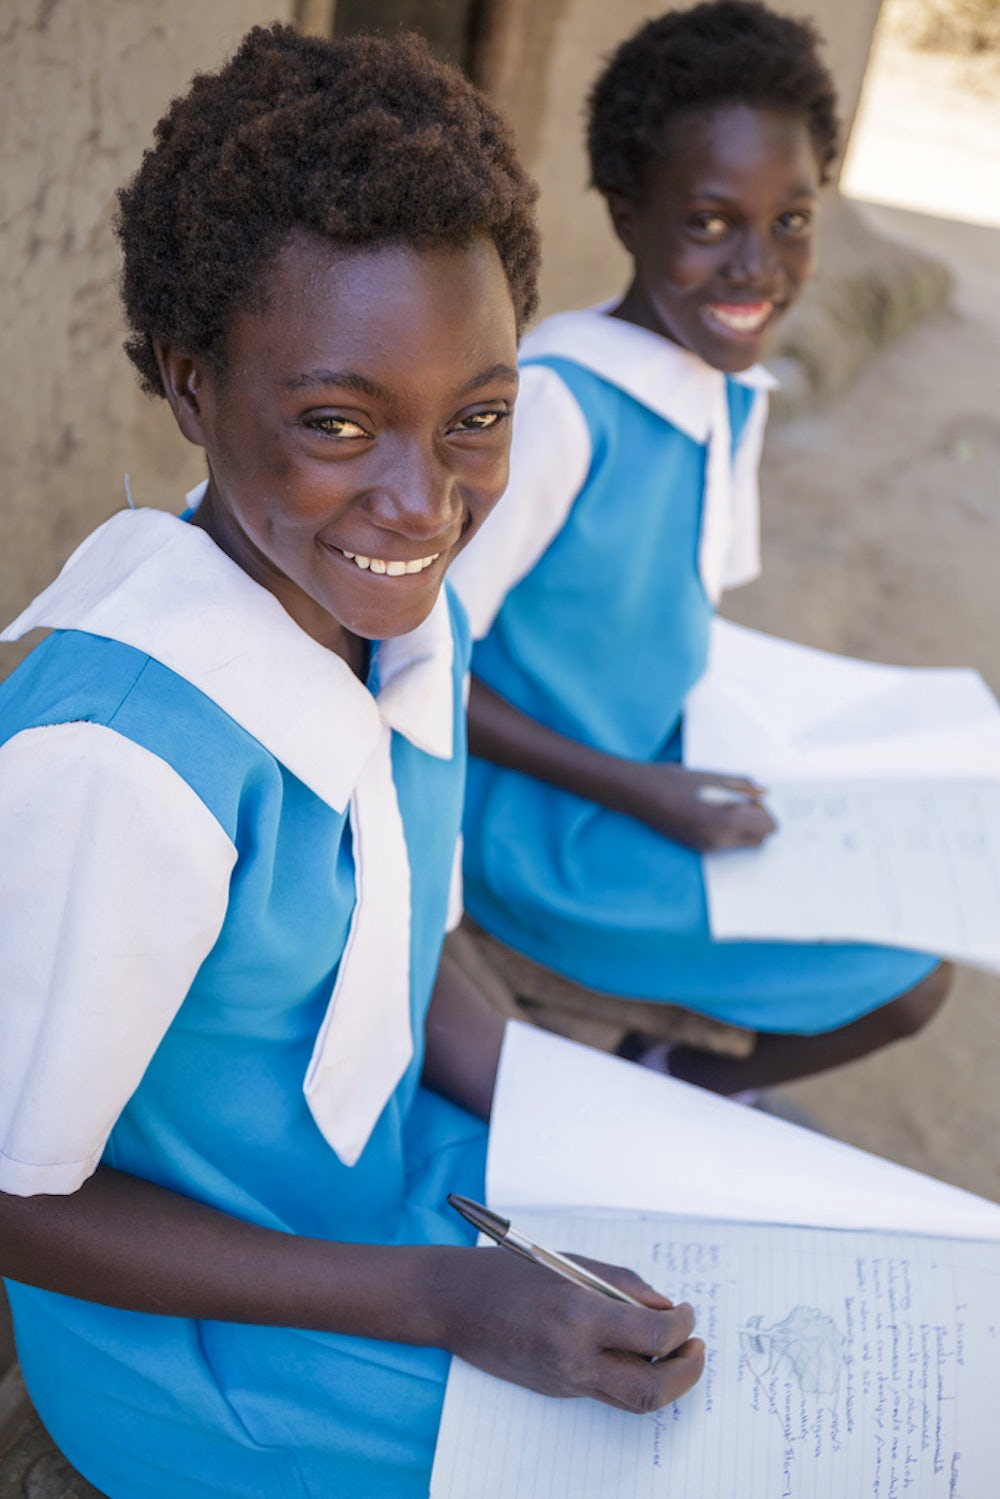 A 13 year old girl in a blue and white school uniform looks smiling while writing with a pencil on paper.